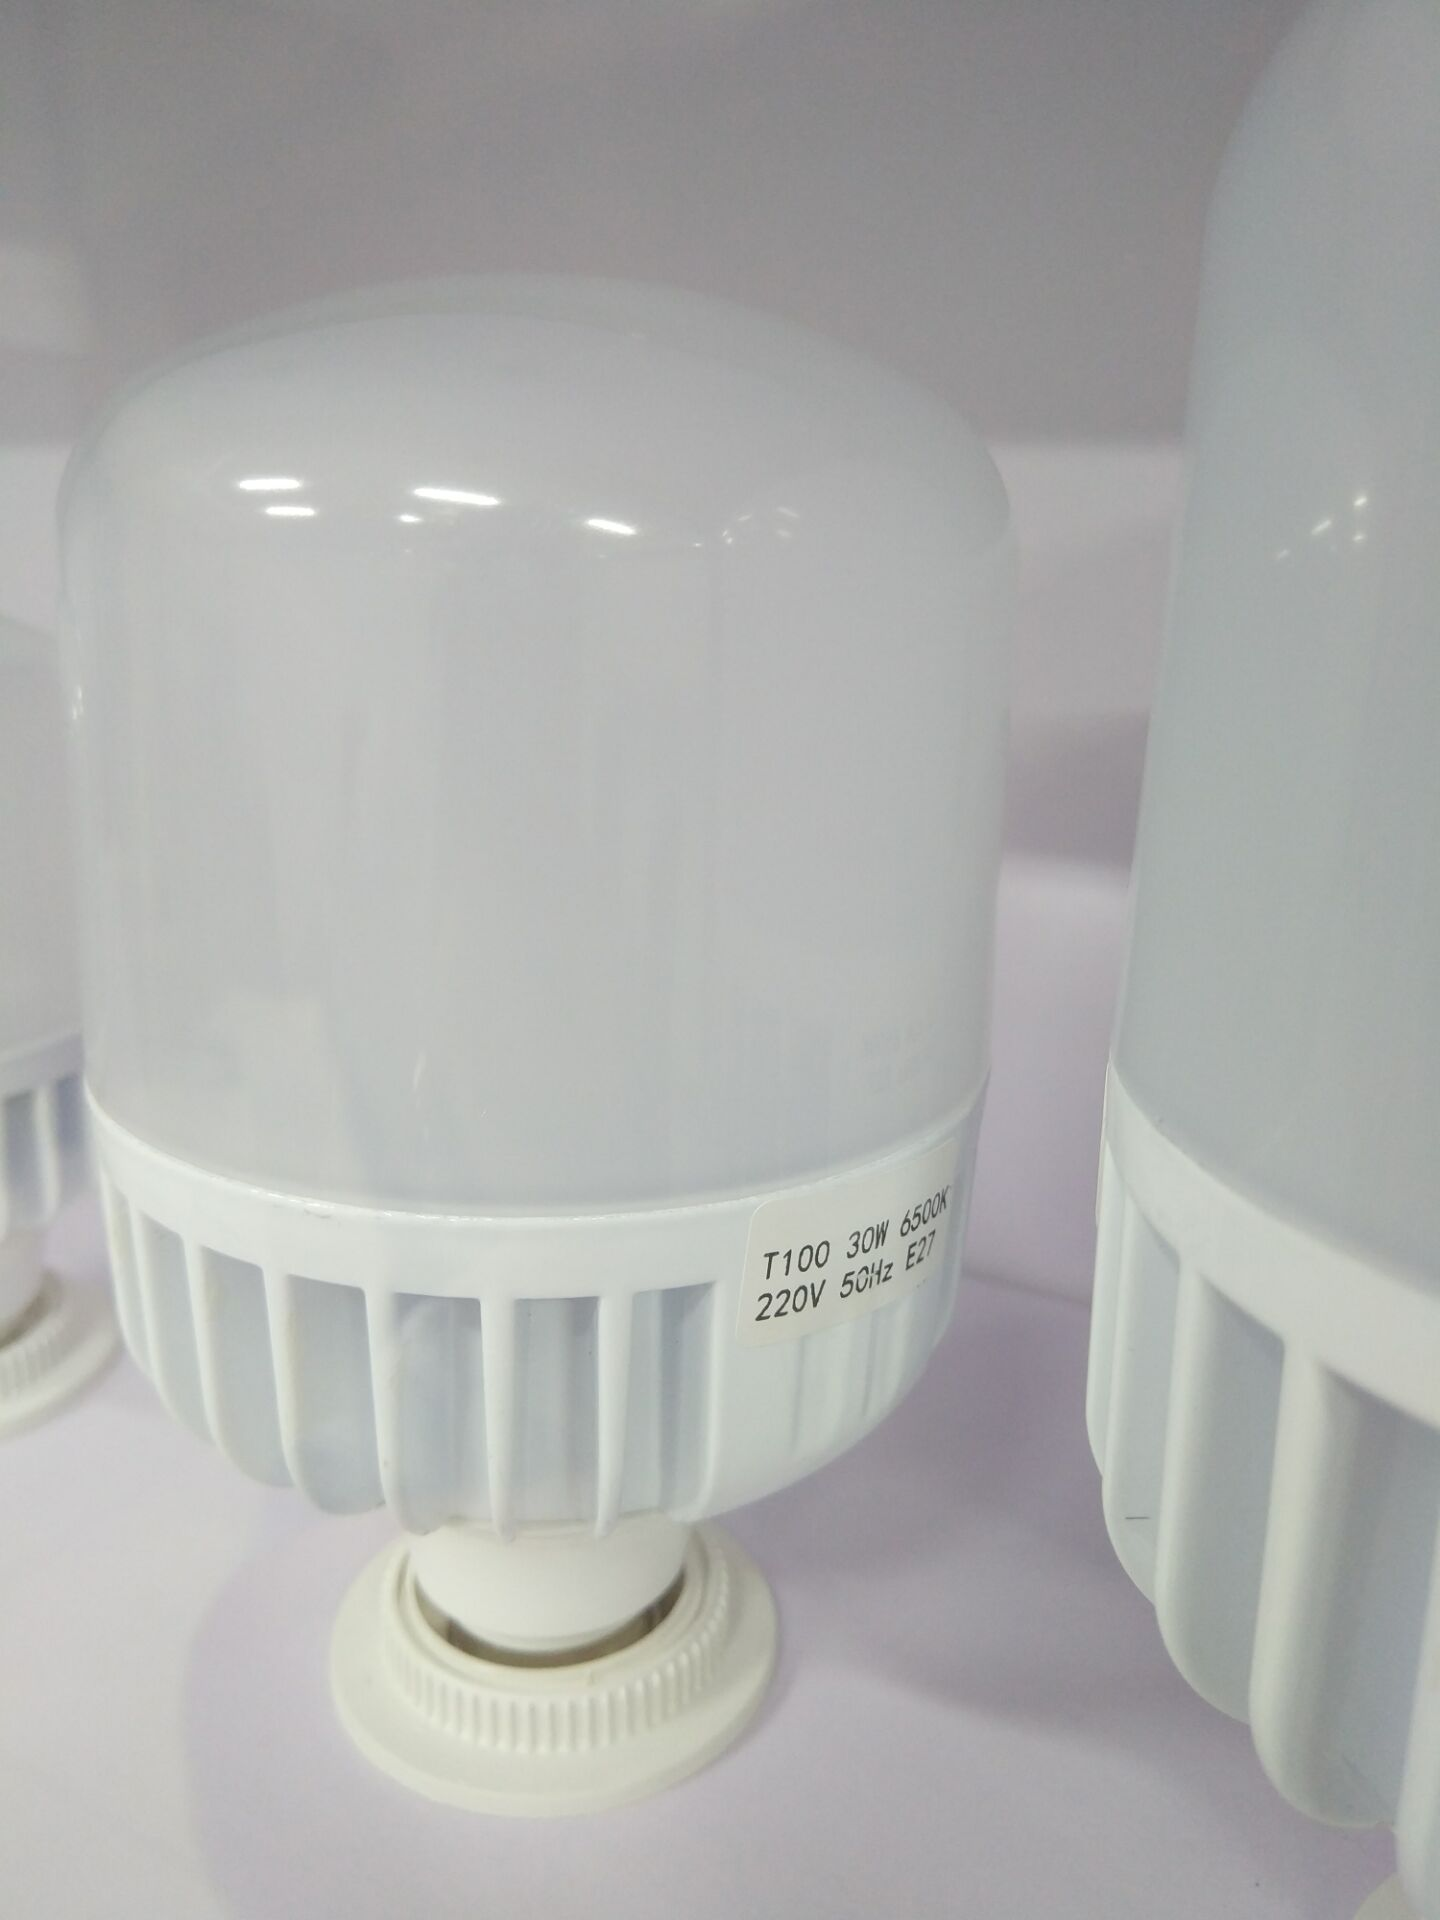 High-power LED bulb T120 40w factory in China 110-240V Philips&Osram